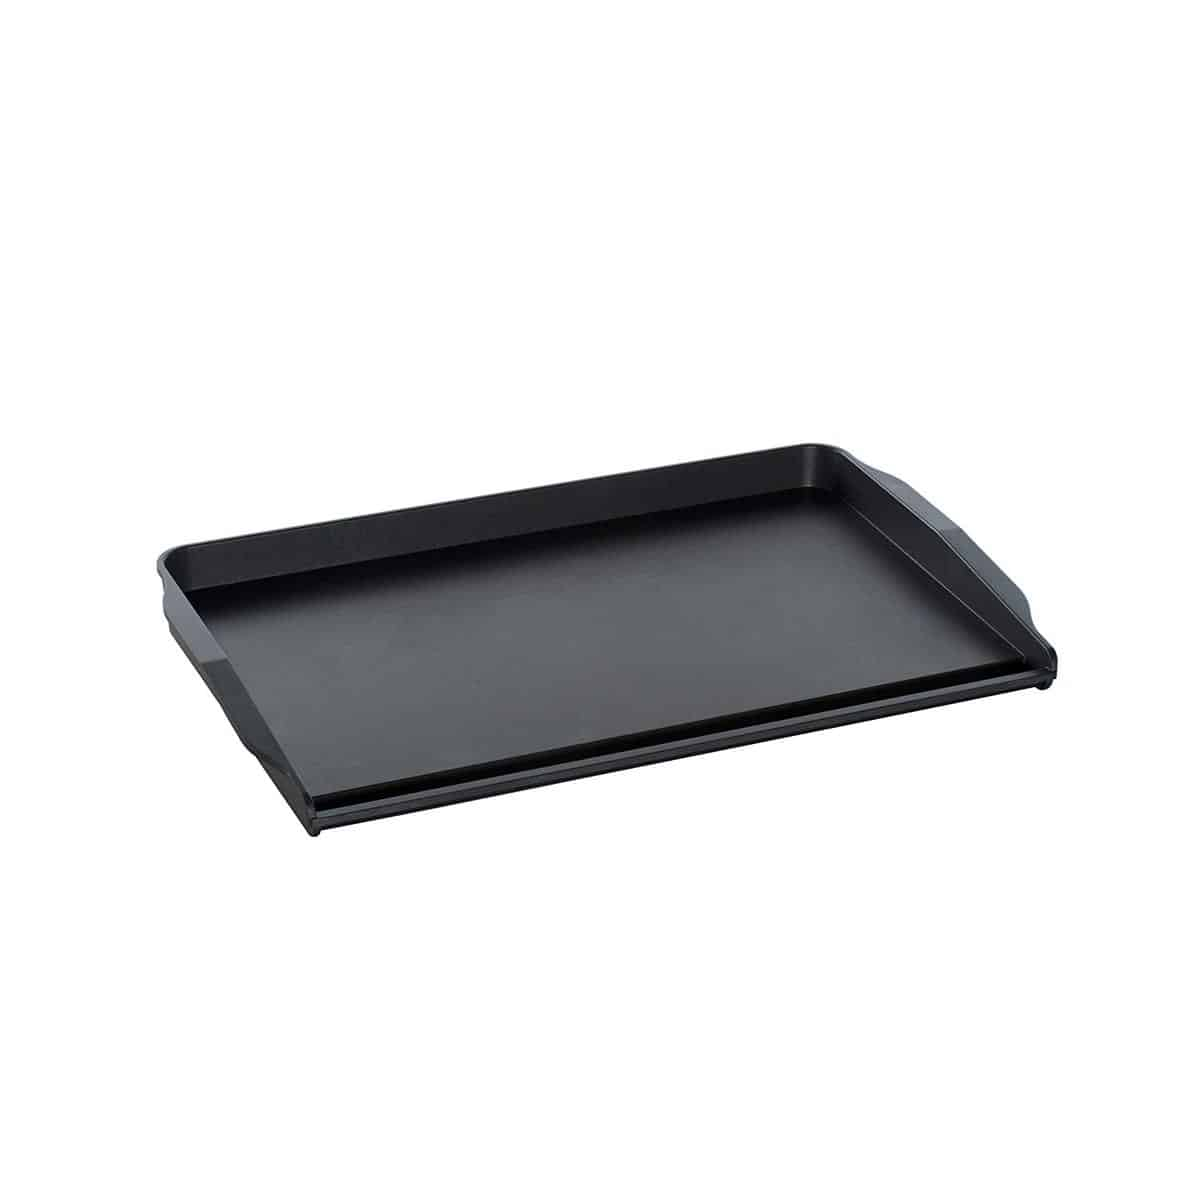 Nordic Ware Griddle